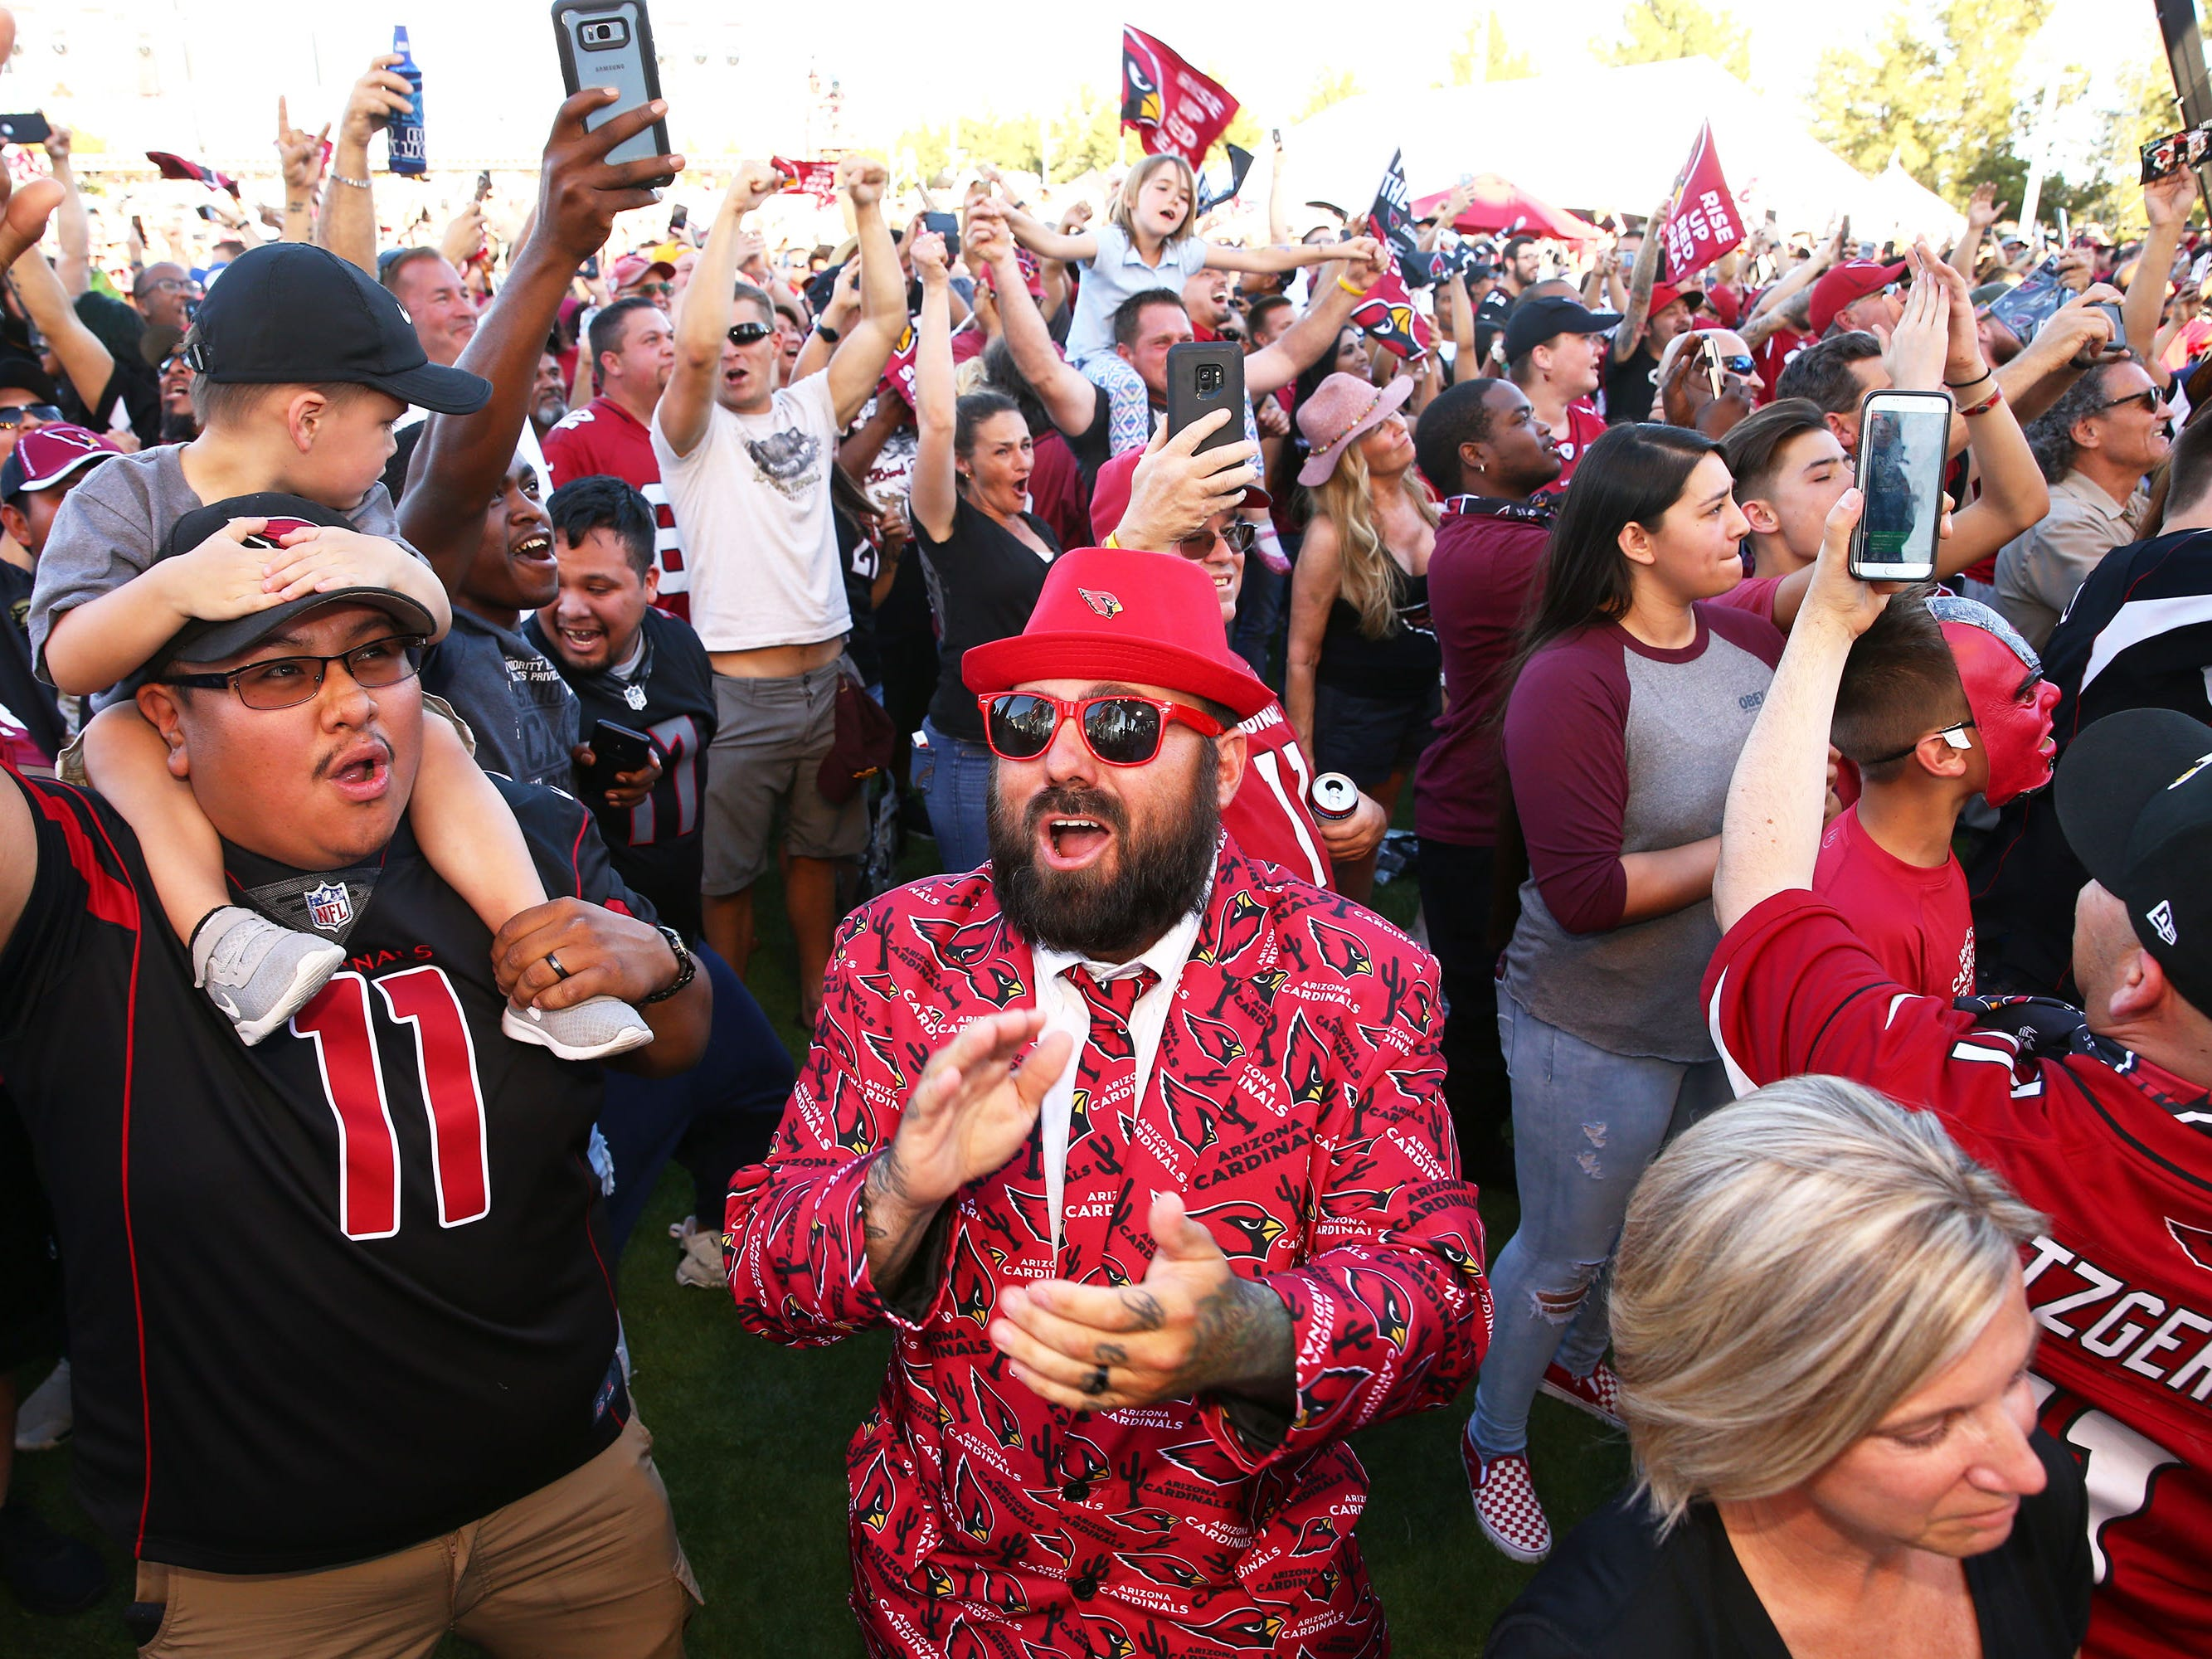 Garret Casados (center) of Surprise, Ariz., reacts after the Arizona Cardinals used their number one draft pick to select quarterback Kyler Murray from Oklahoma during the NFL Draft watch party at State Farm Stadium on Apr. 25, 2019 in Glendale, Ariz.